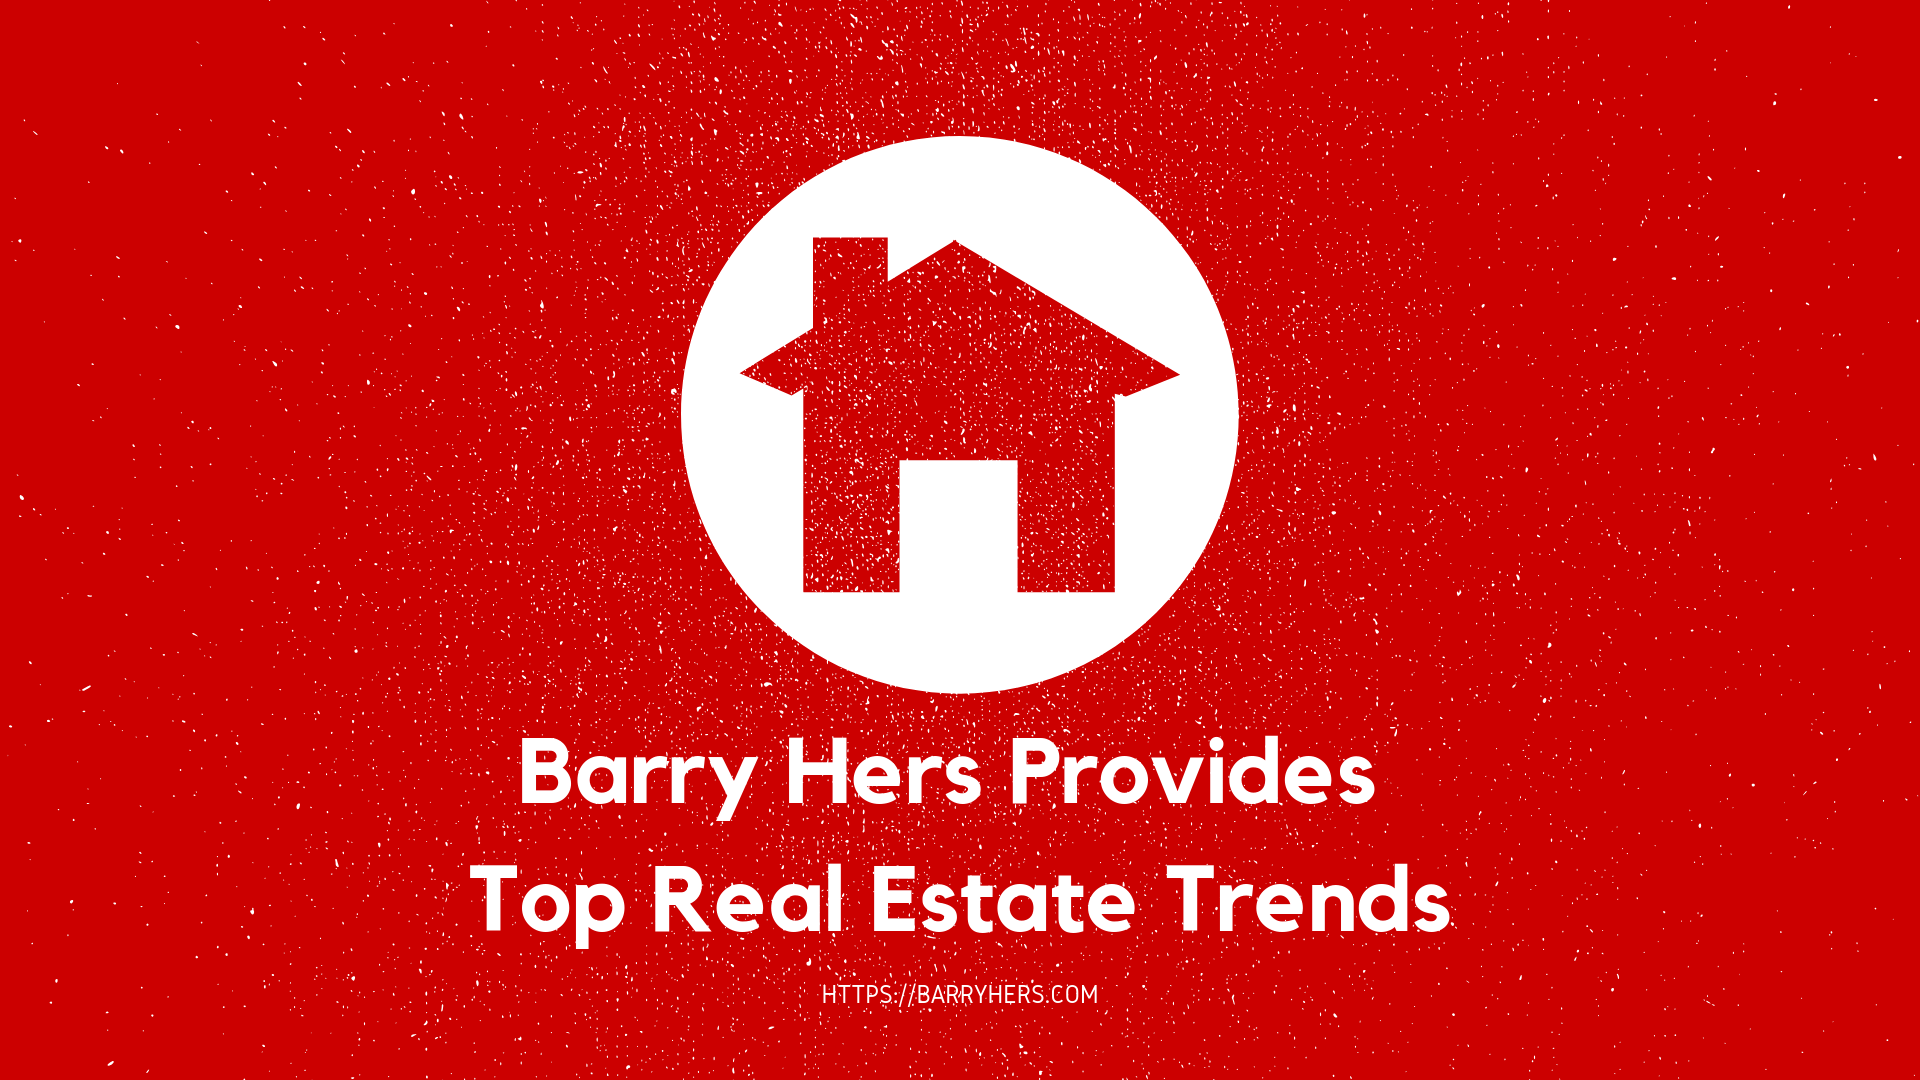 Barry Hers is a leader in real estate.